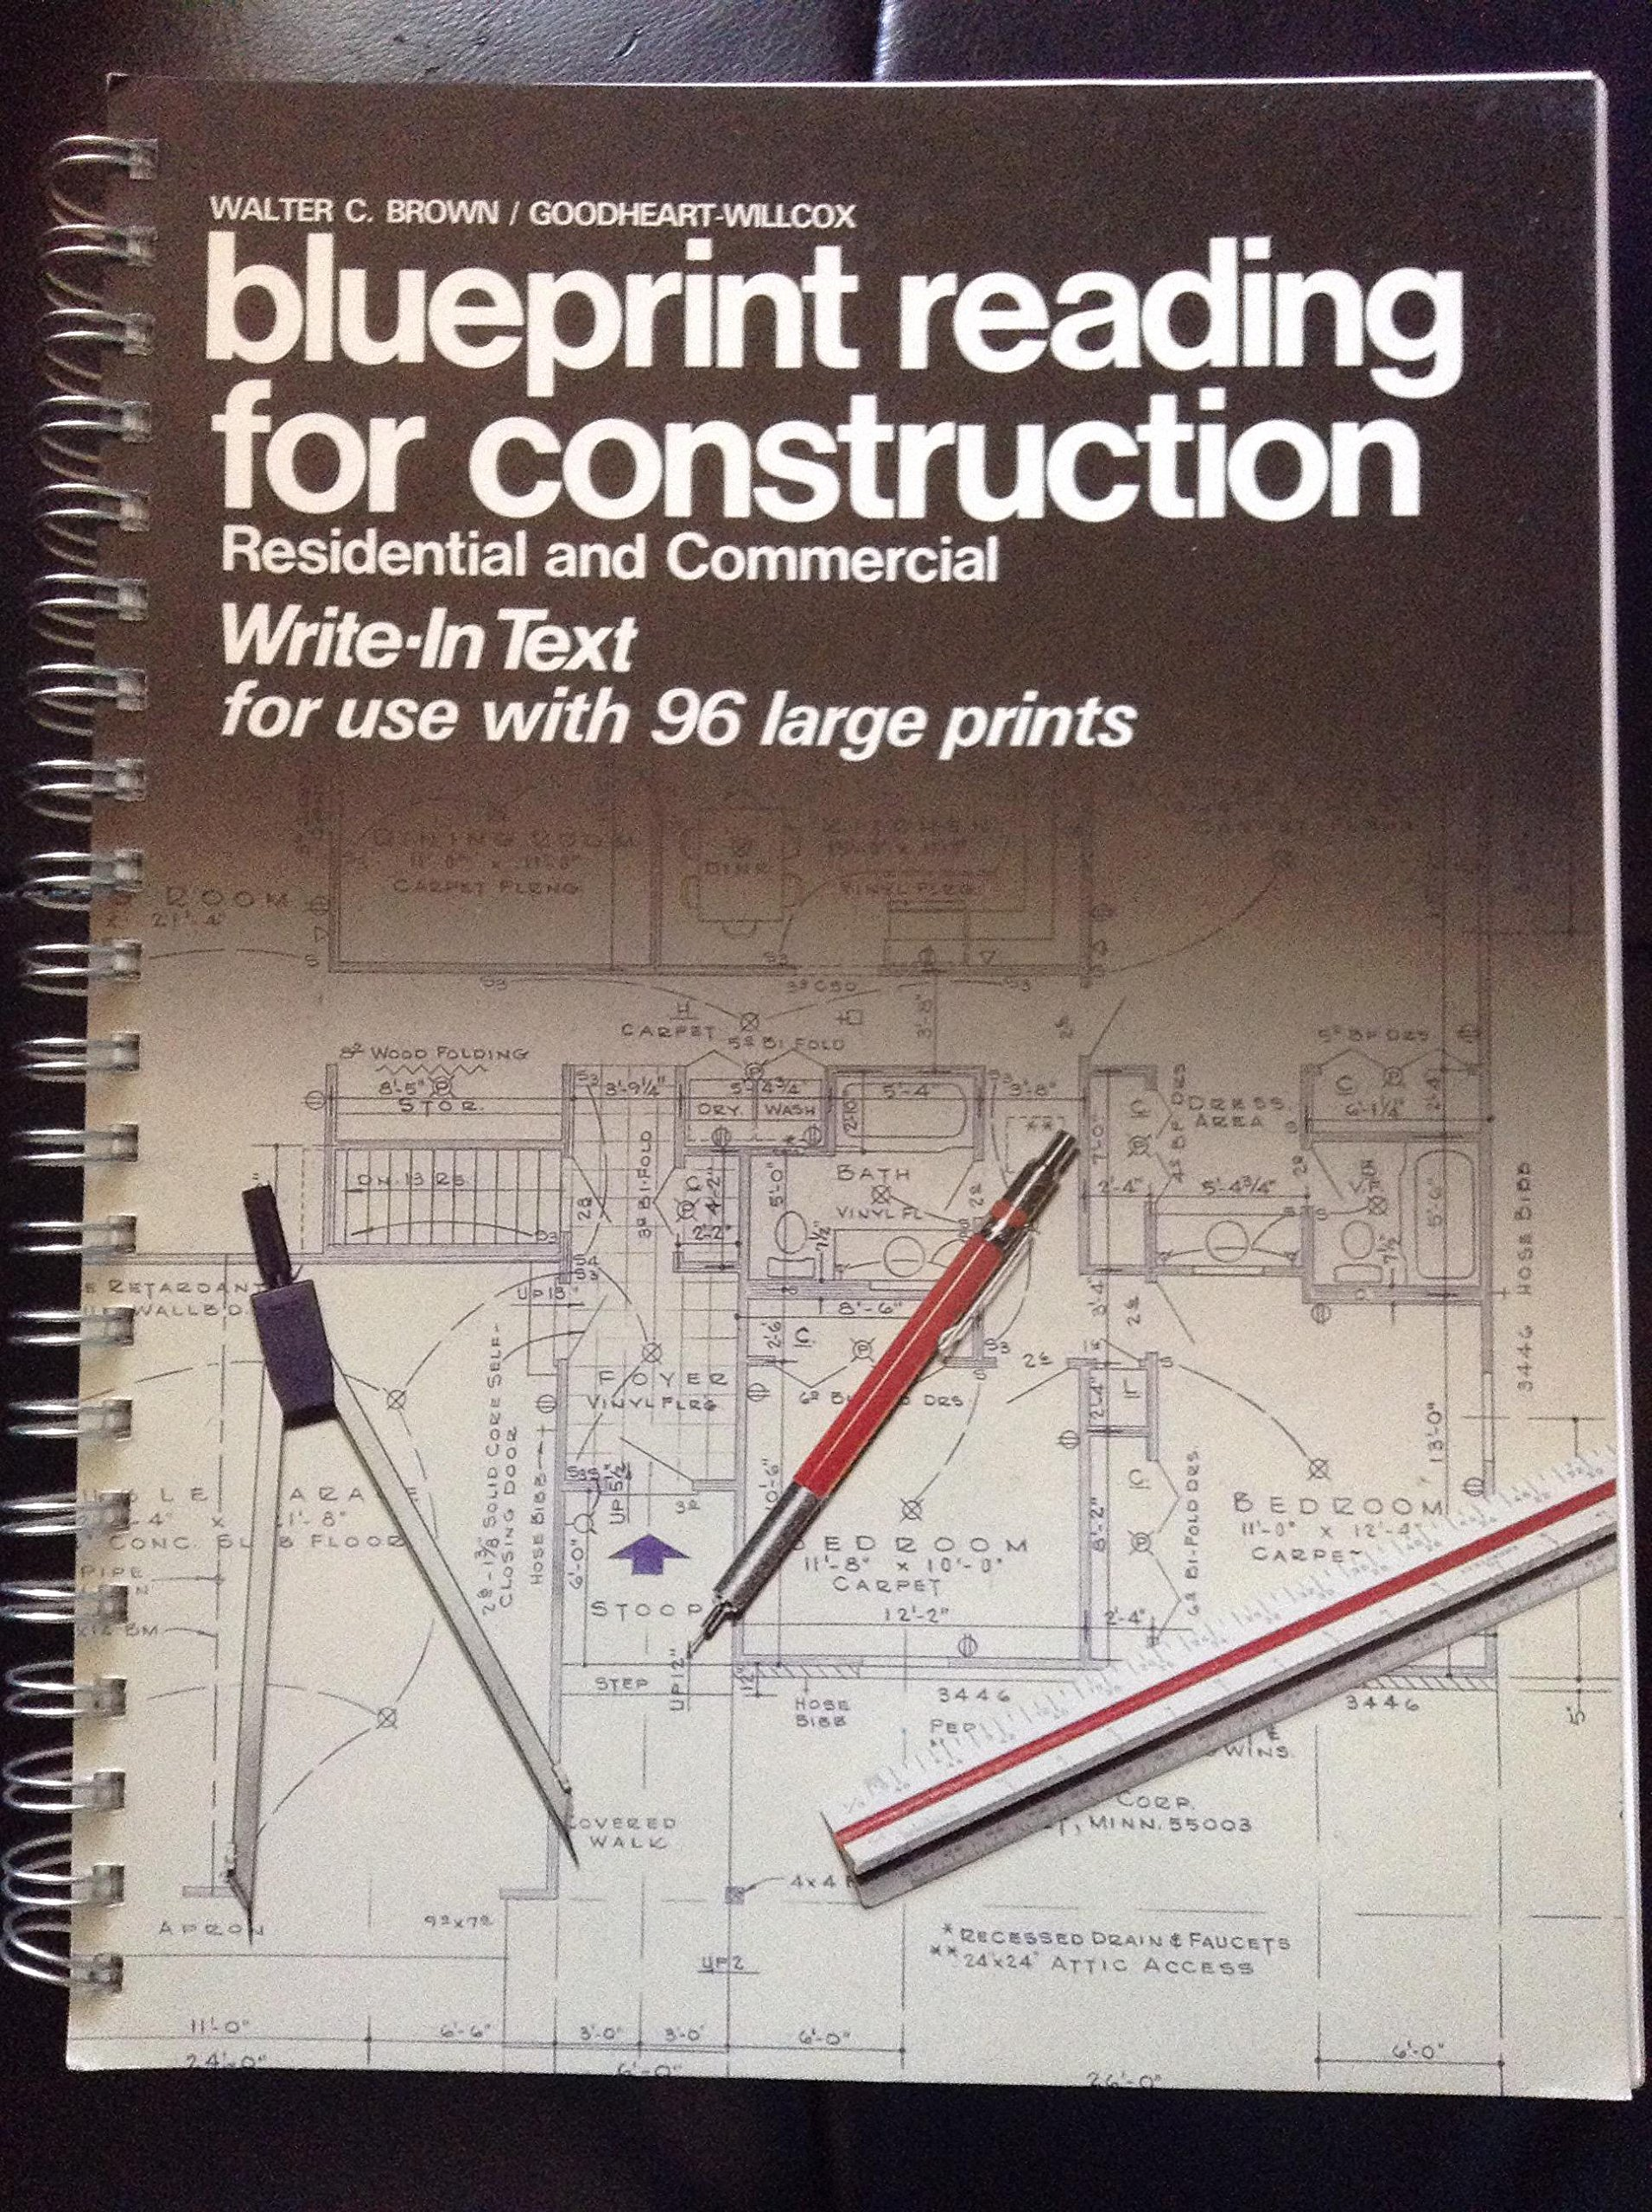 Buy blueprint reading for construction residential and commercial buy blueprint reading for construction residential and commercial write in text book online at low prices in india blueprint reading for construction malvernweather Images